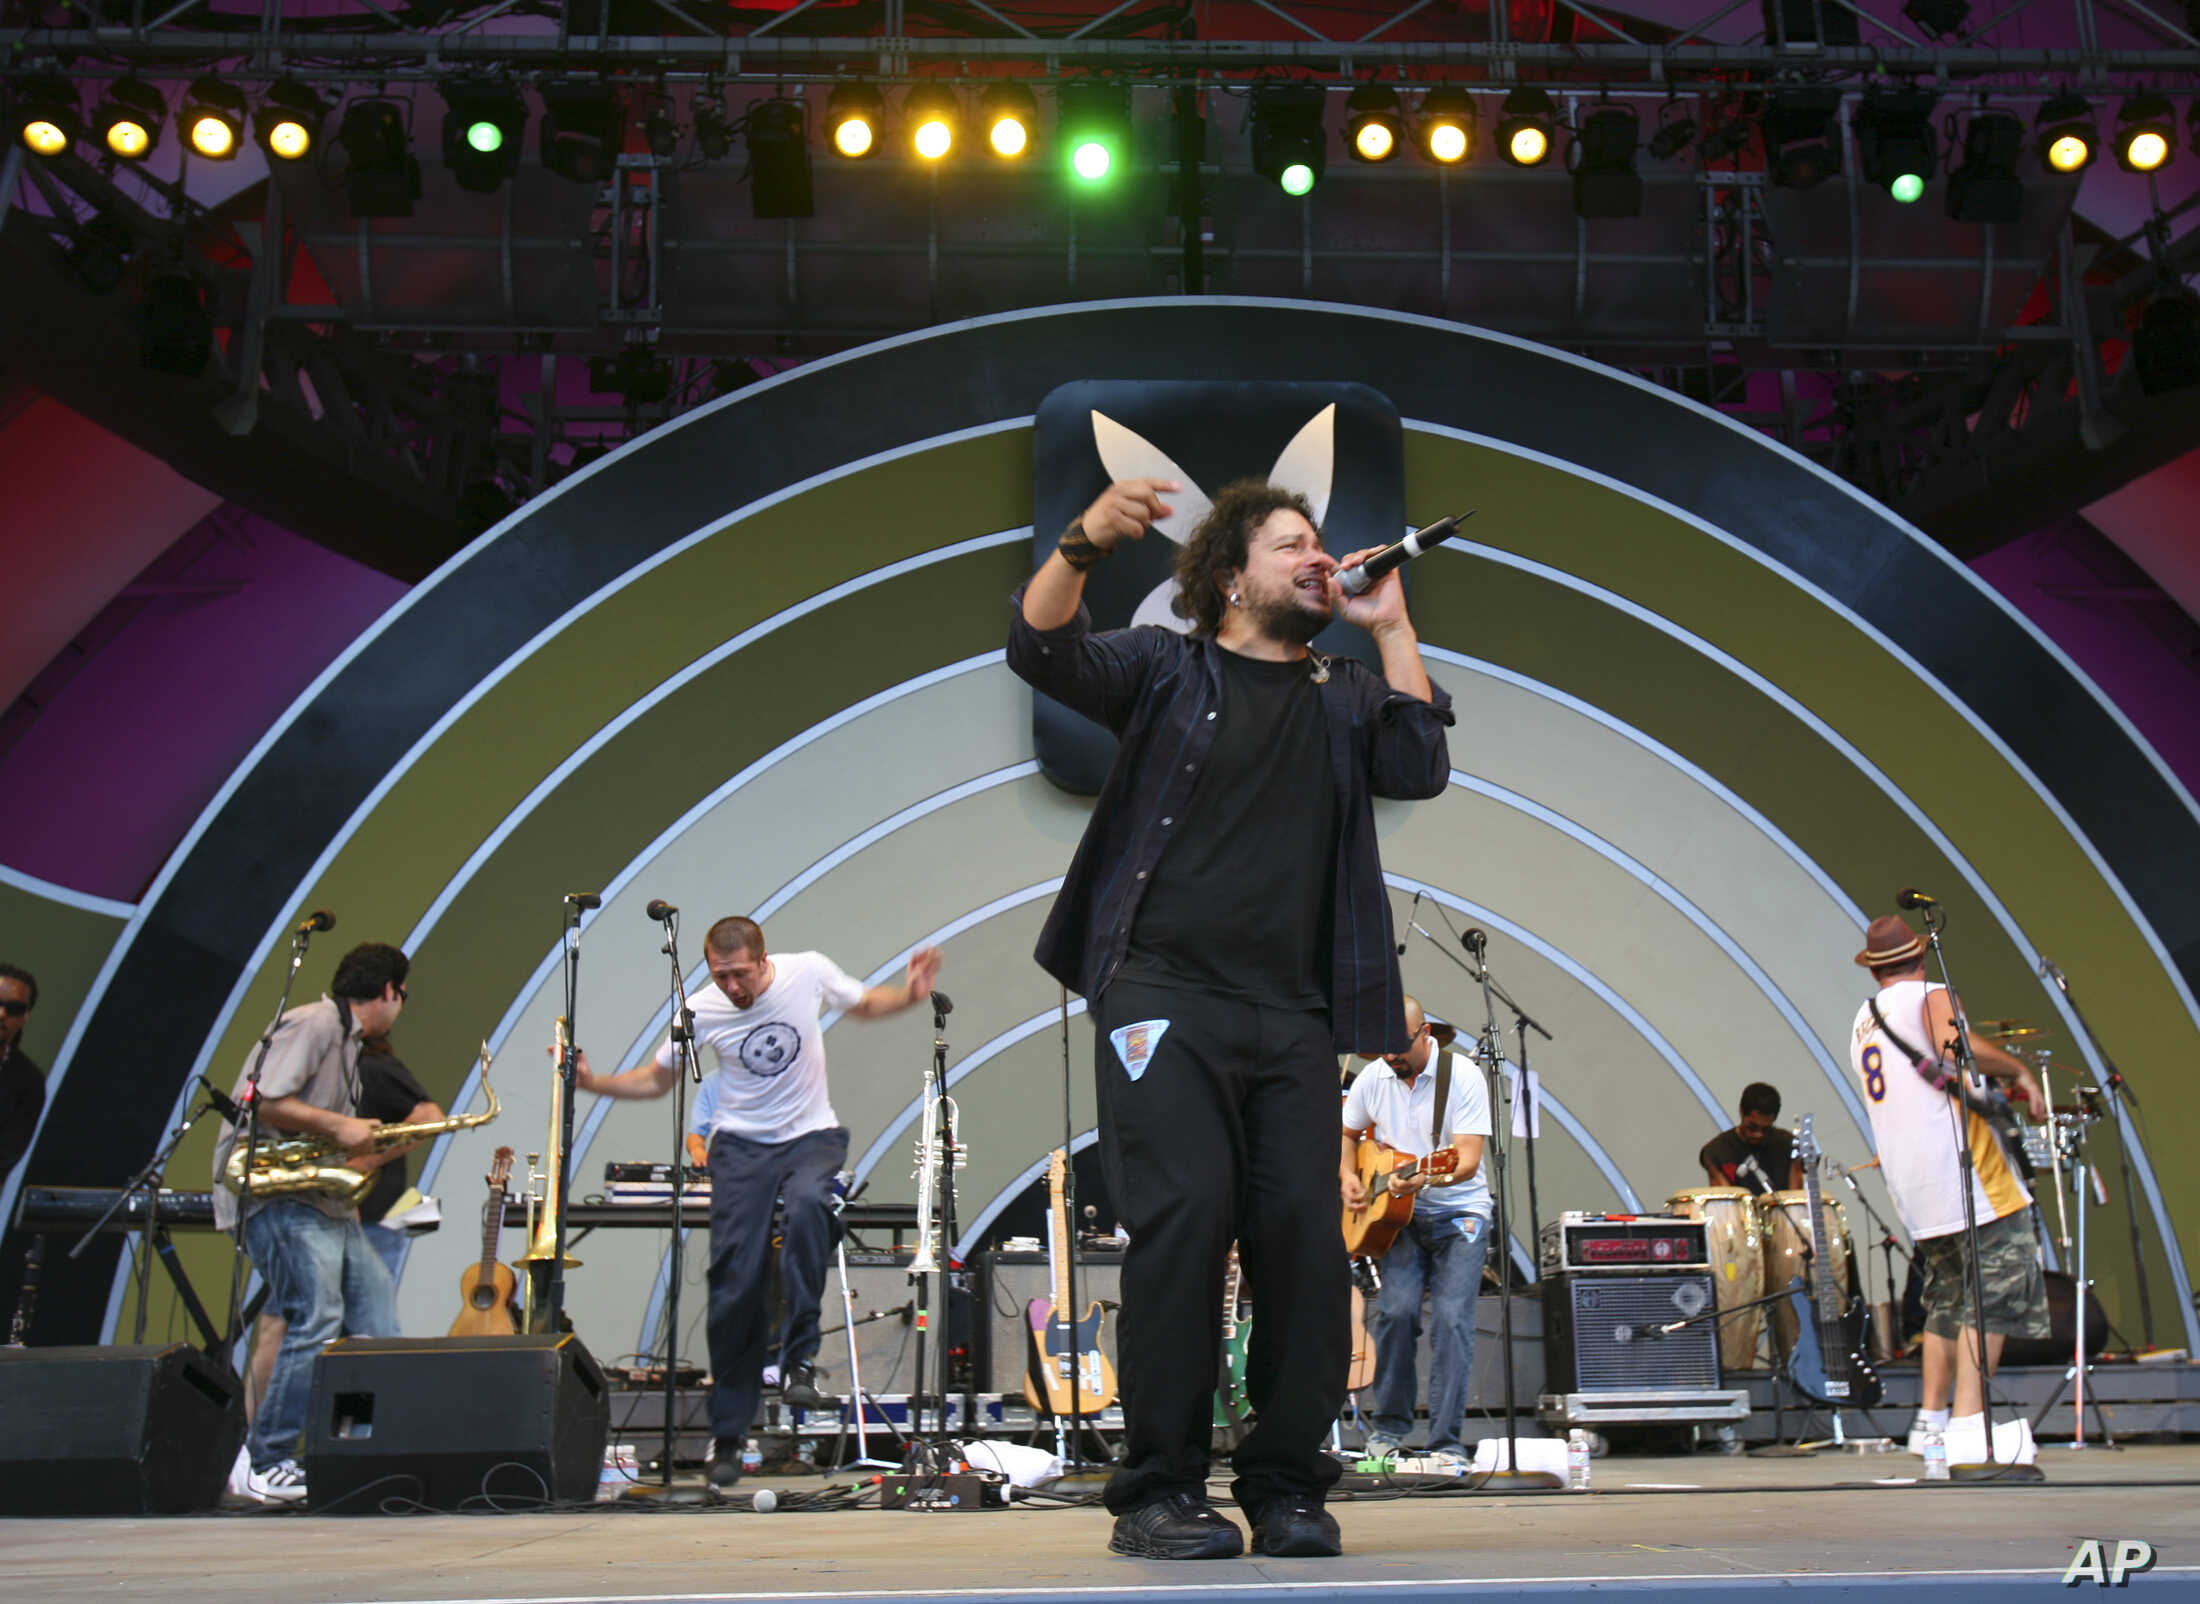 Playboy Festival Features Global Jazz | Voice of America - English